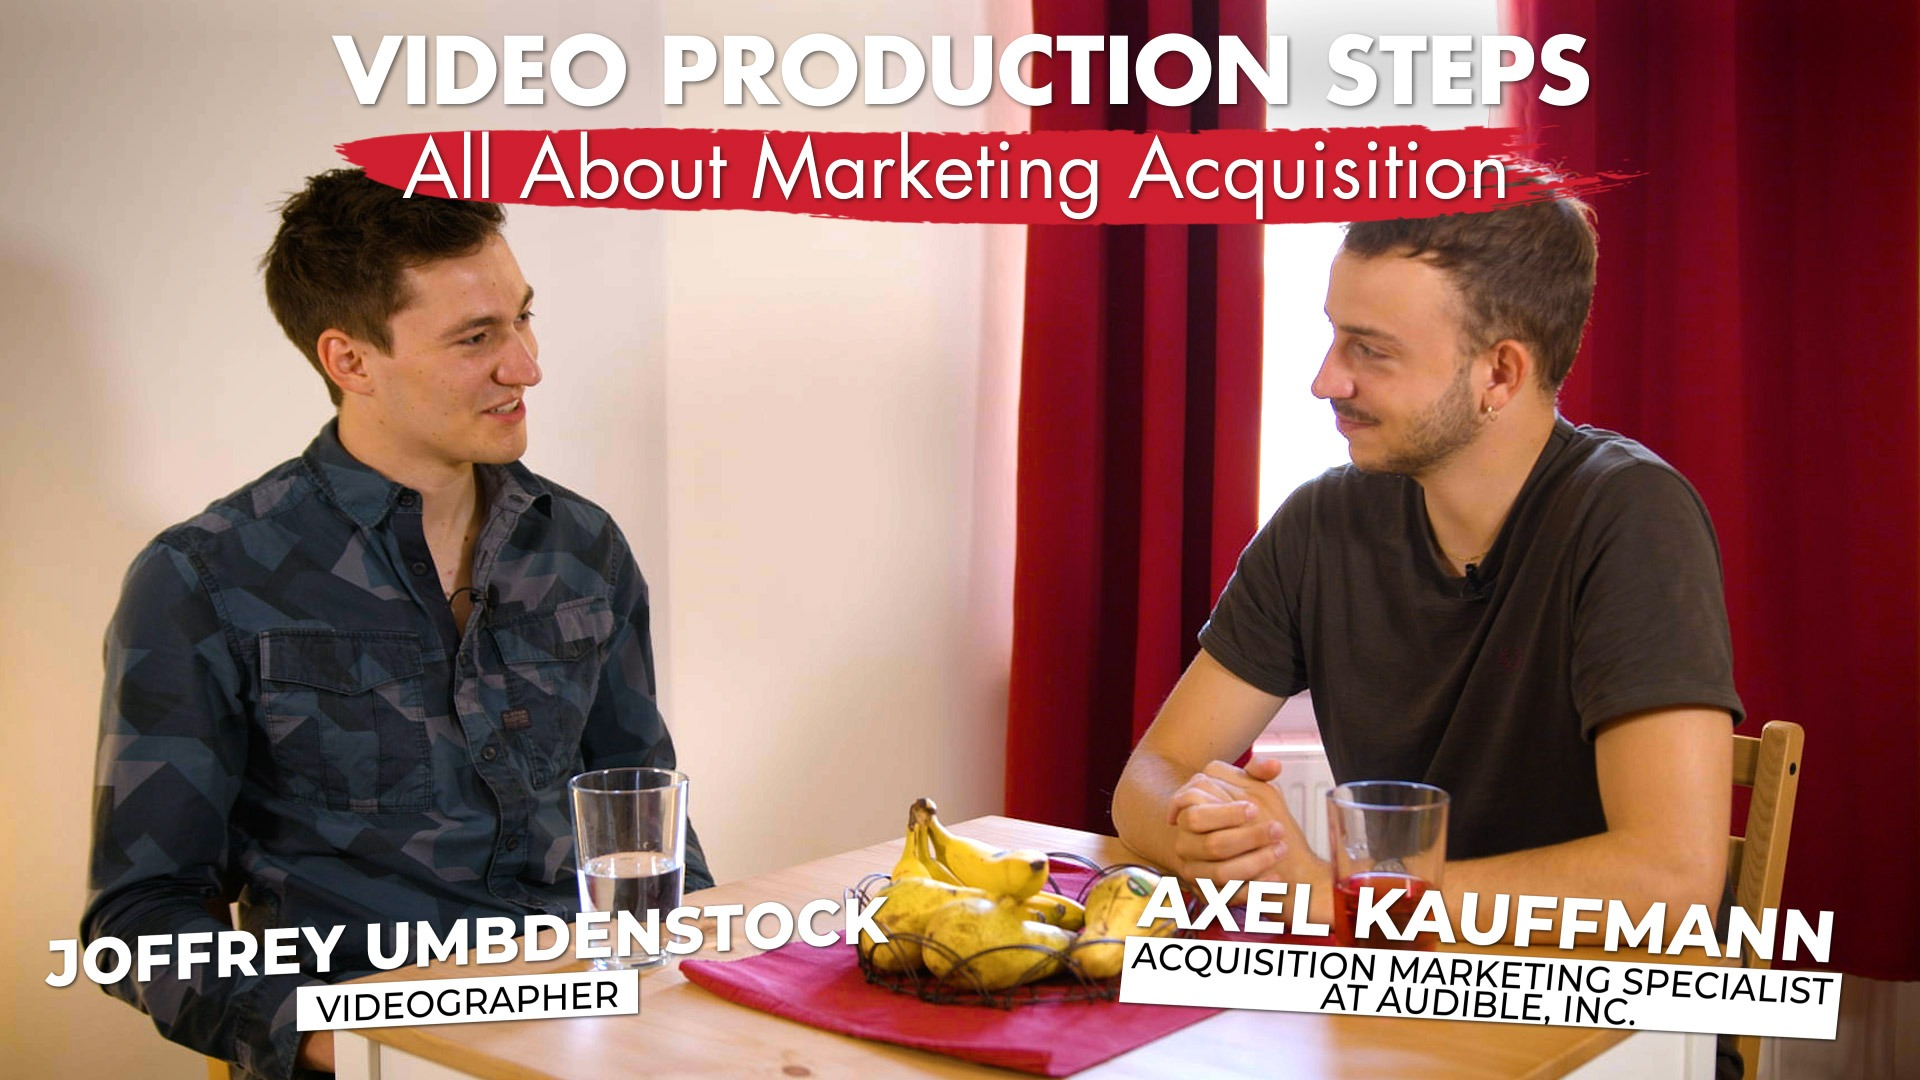 Video production steps interview - Marketing Acquisition